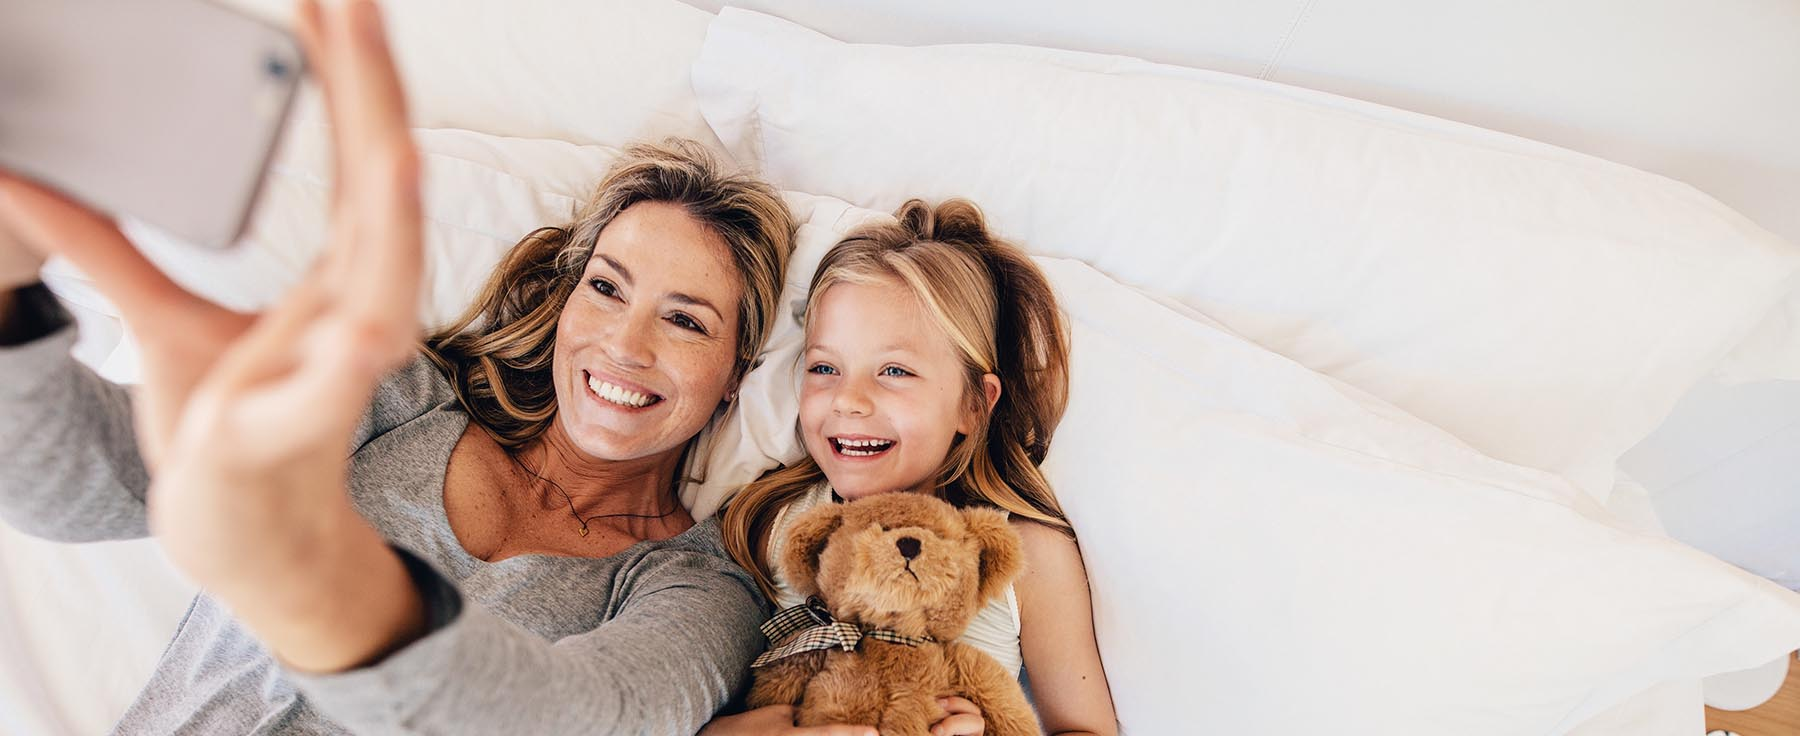 Mum taking photo with her daughter | The Companionist